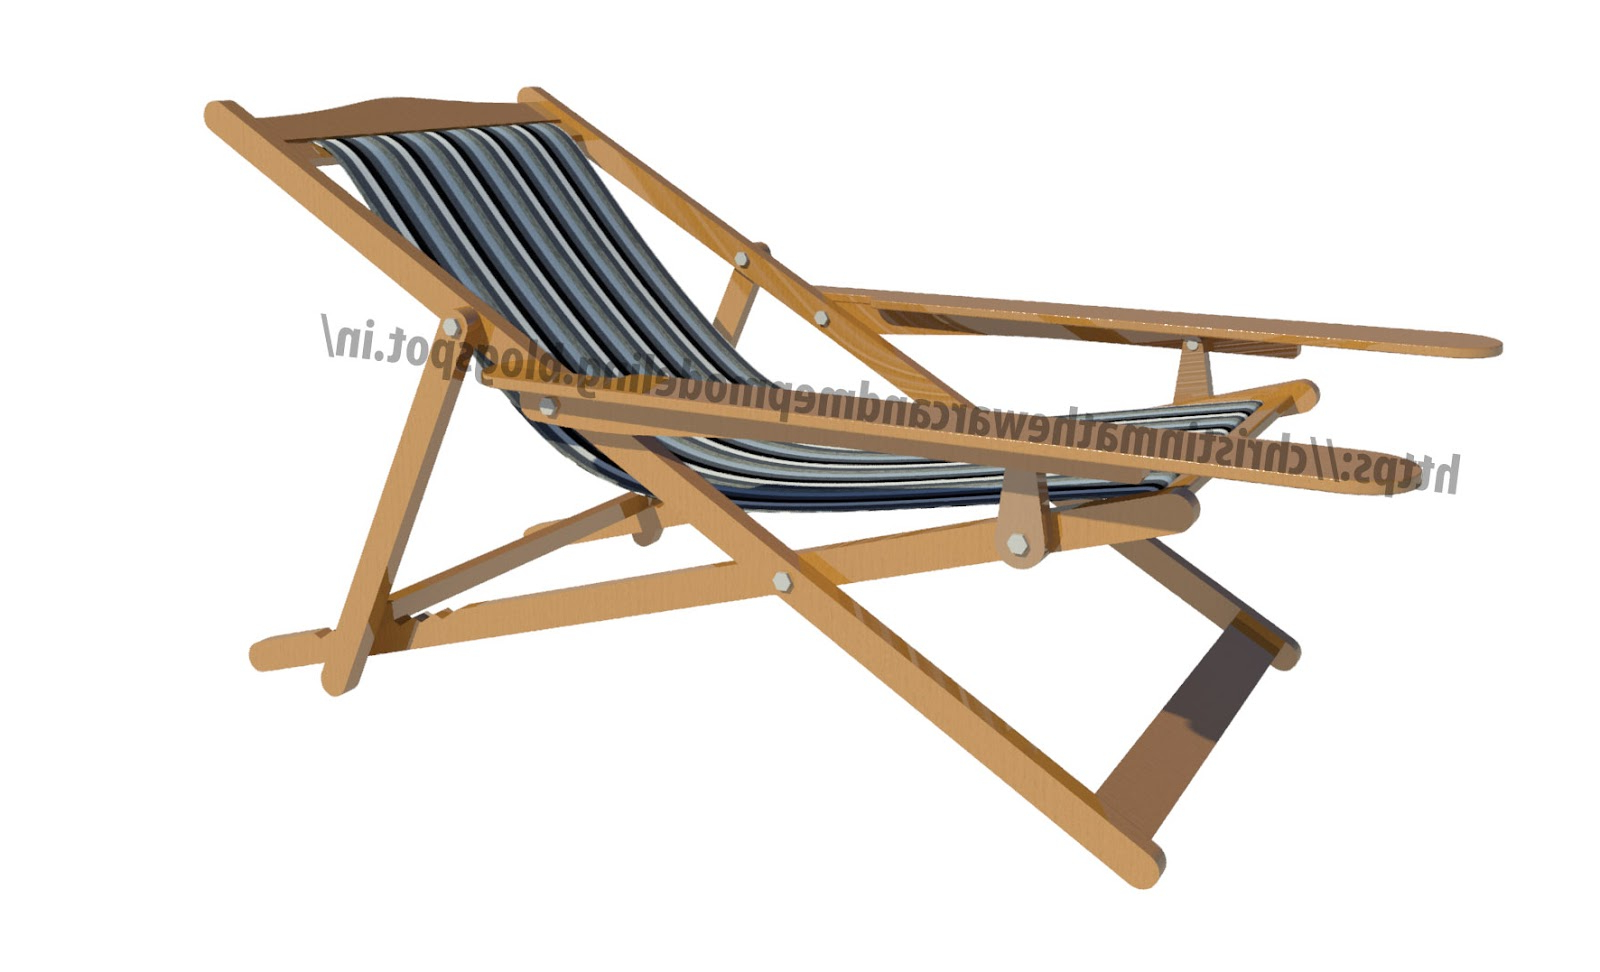 Easychair 3id6 Wooden Easy Chair Kerala Style Christin Mathew Architectural